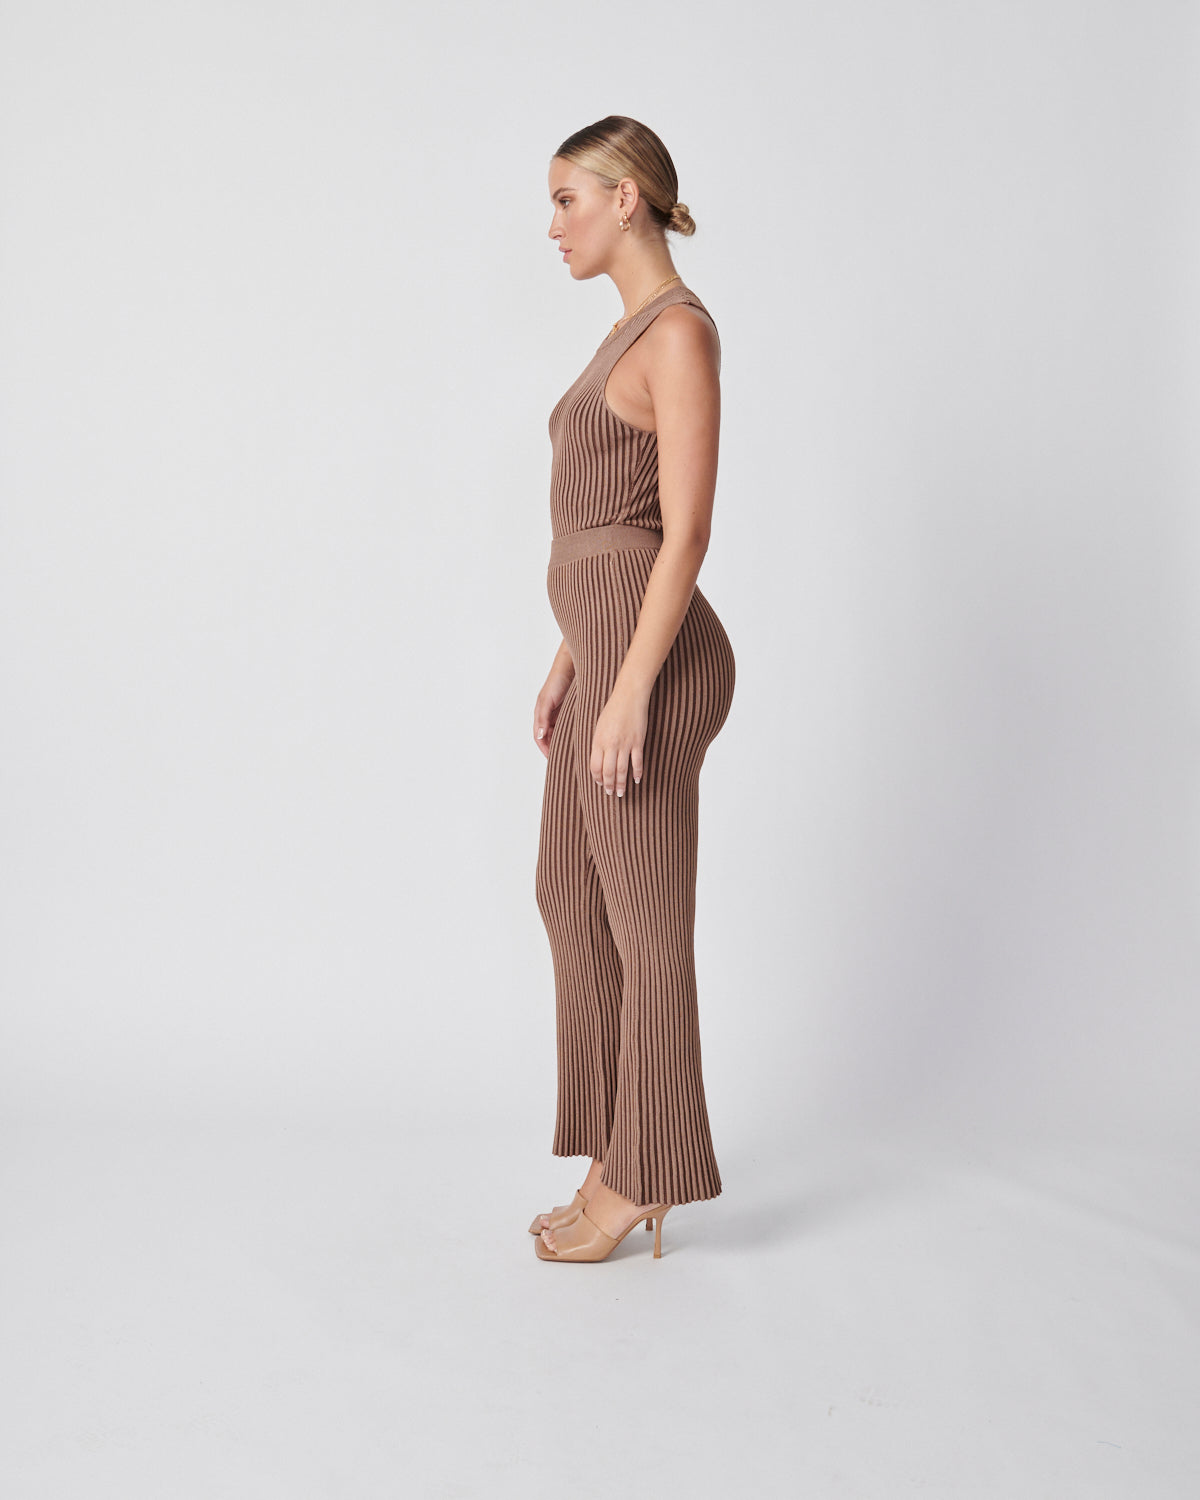 Contrast Knit Pants - Tonal Tan